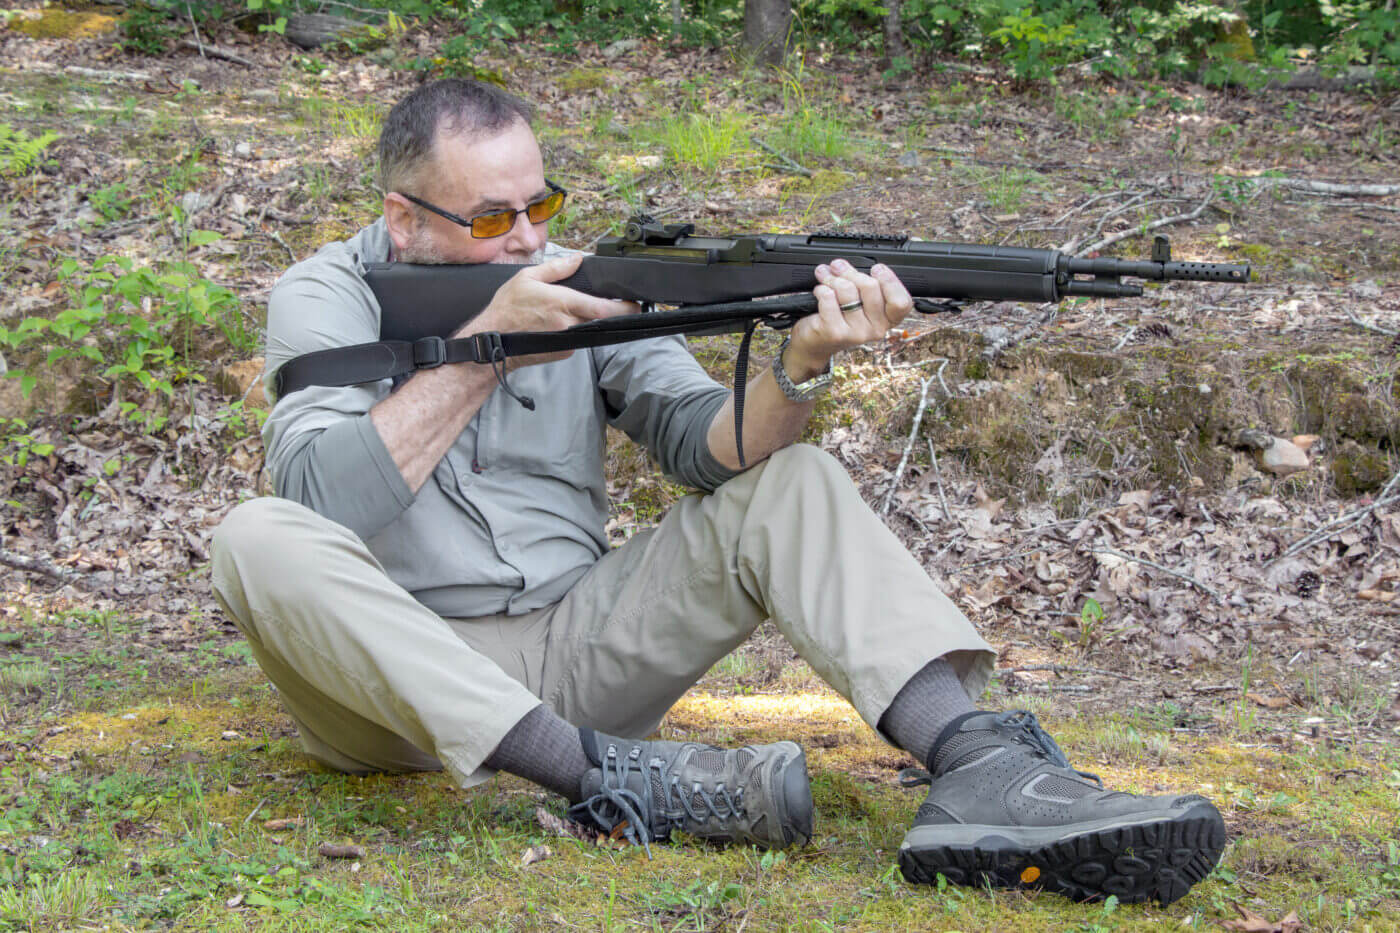 Shooting a rifle while sitting